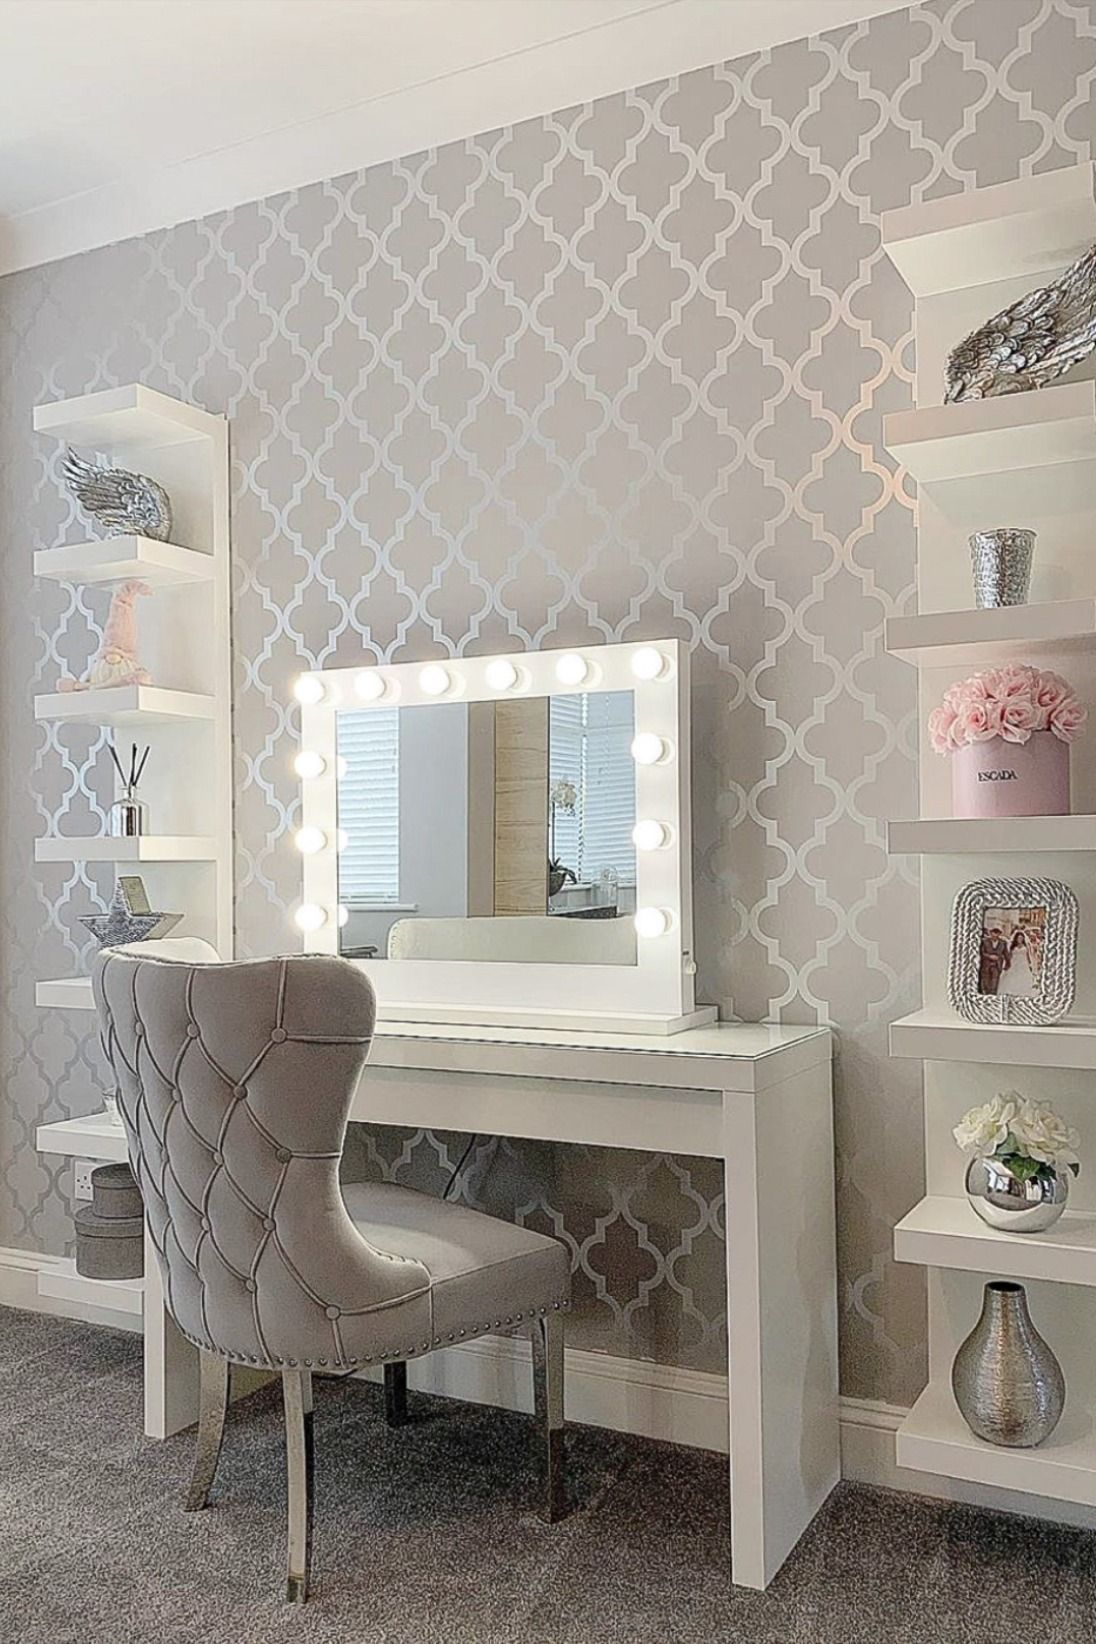 Henderson Interiors Camden Trellis Wallpaper Soft Grey Silver In 2020 Luxurious Bedrooms Grey Bedroom Decor Girls Bedroom Wallpaper